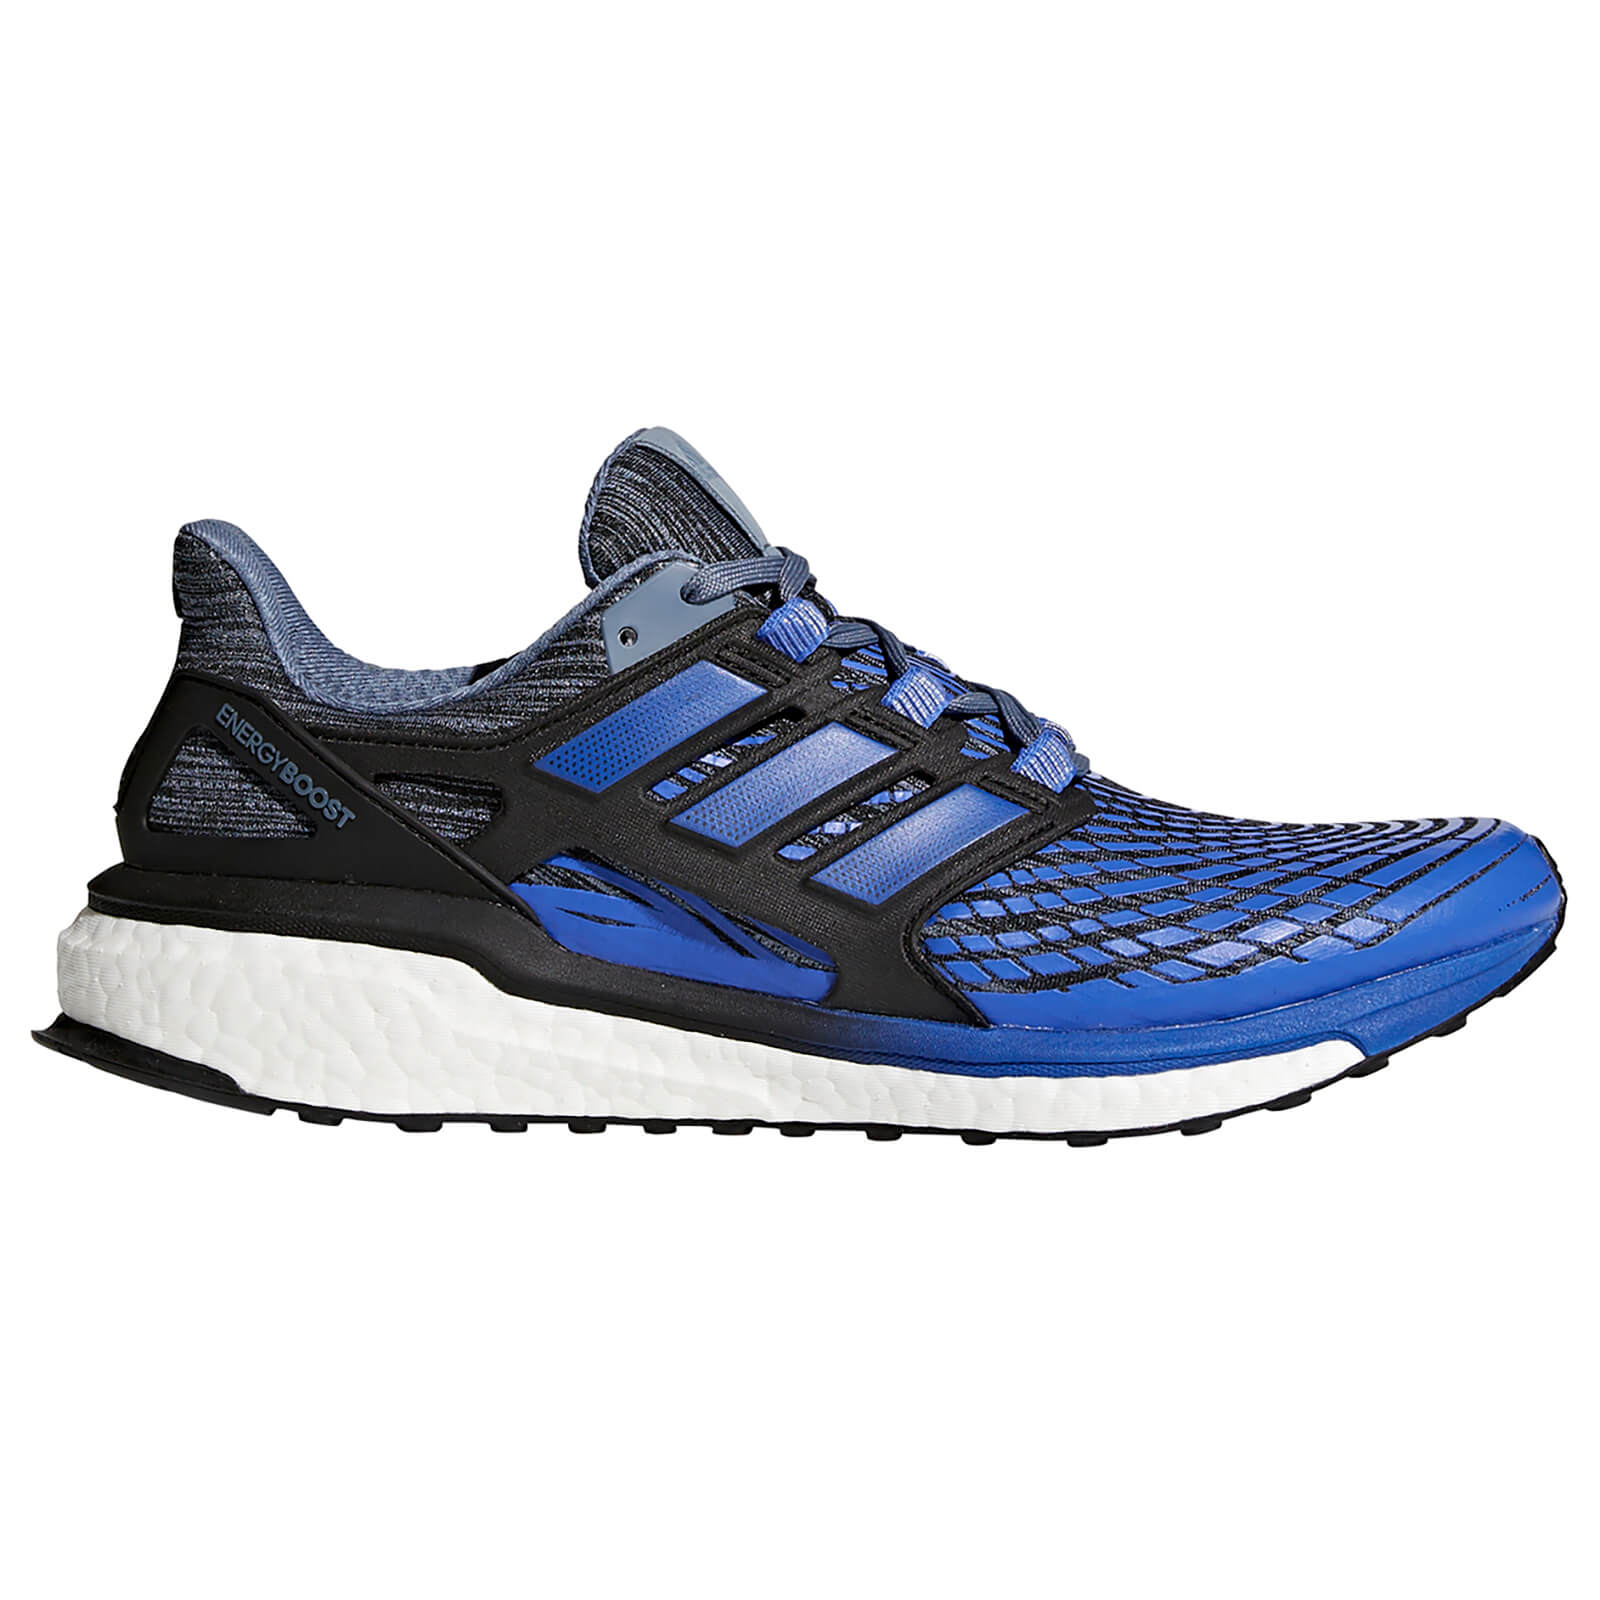 35dfb9faf619c Adidas Men S Energy Boost Running Shoes Steel Blue Probikekit Com